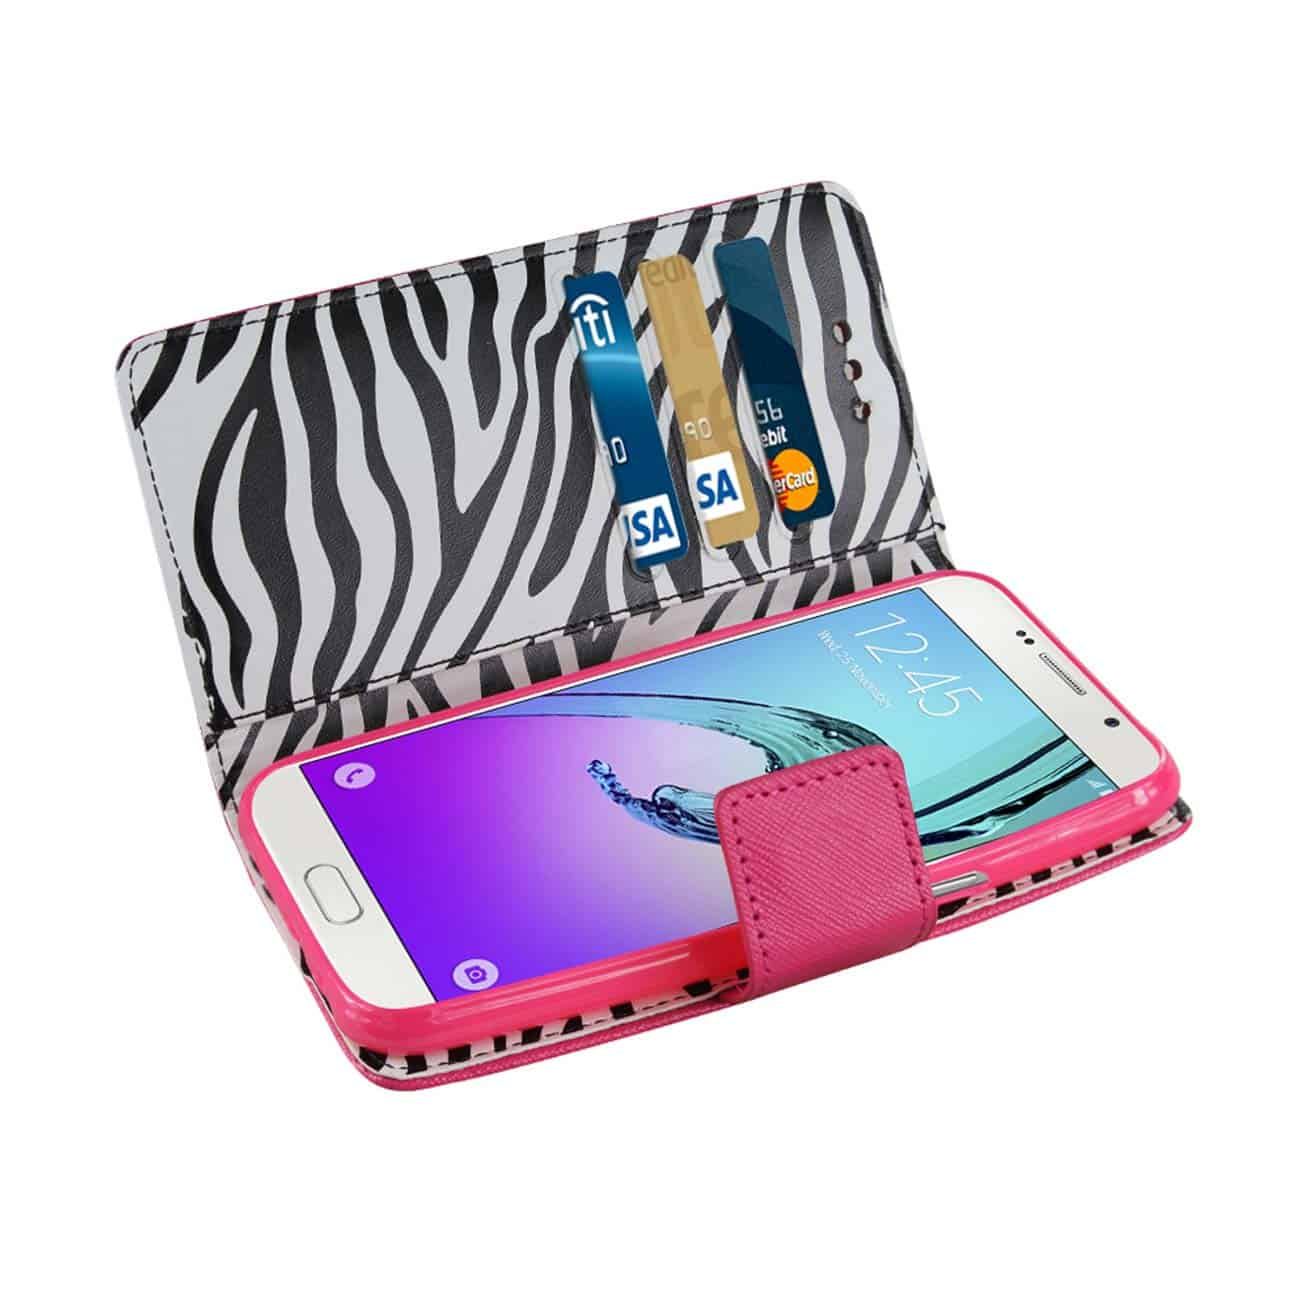 SAMSUNG GALAXY A7 (2016) 3-IN-1 WALLET CASE WITH INNER ZEBRA PRINT IN HOT PINK